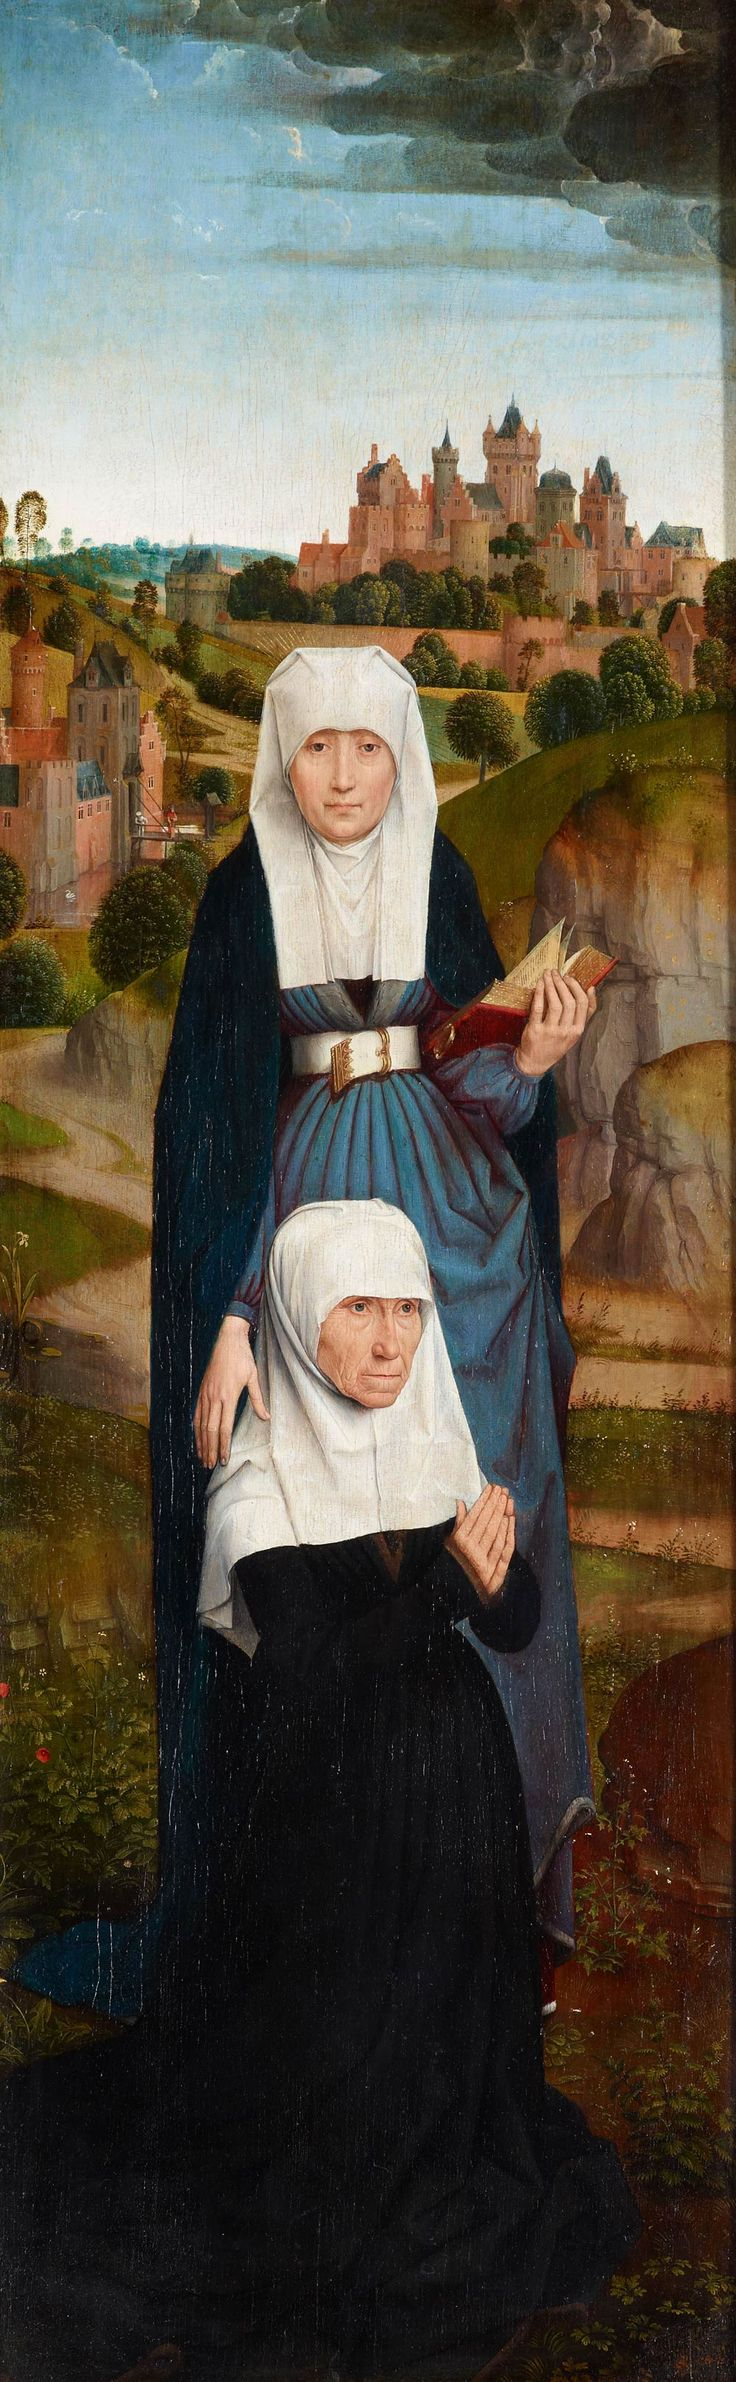 Hans Memling | 1430/40 – 1494 | Old Woman at Prayer with St. Anne | The Morgan Library & Museum